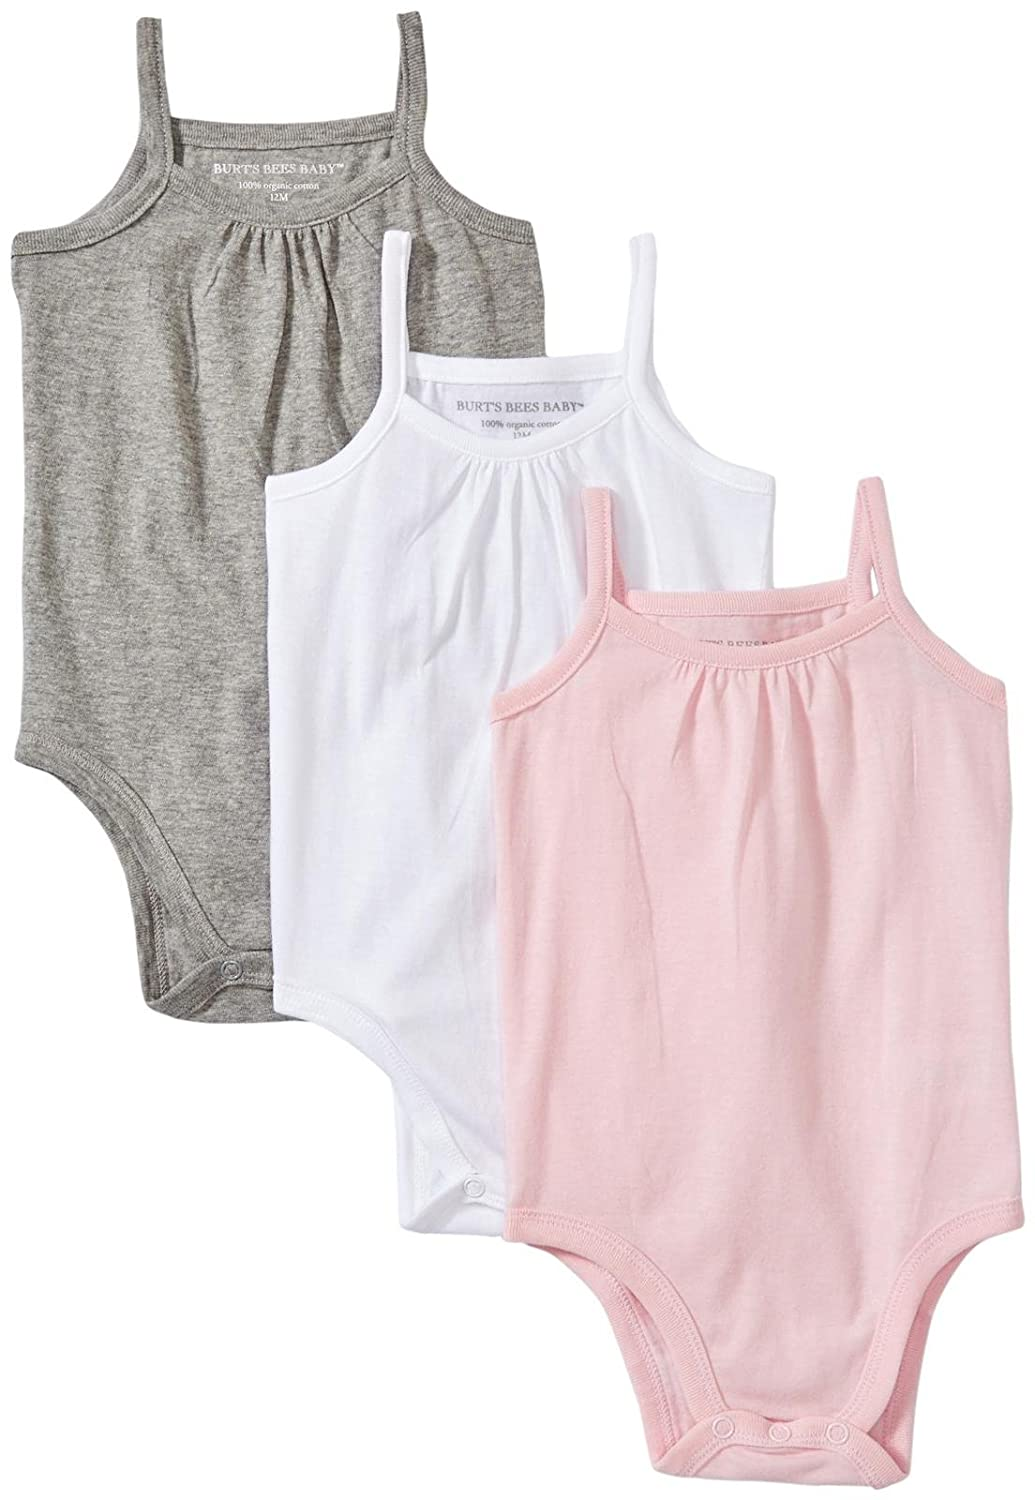 Organic Newborn Baby Clothes The Gentle Nursery